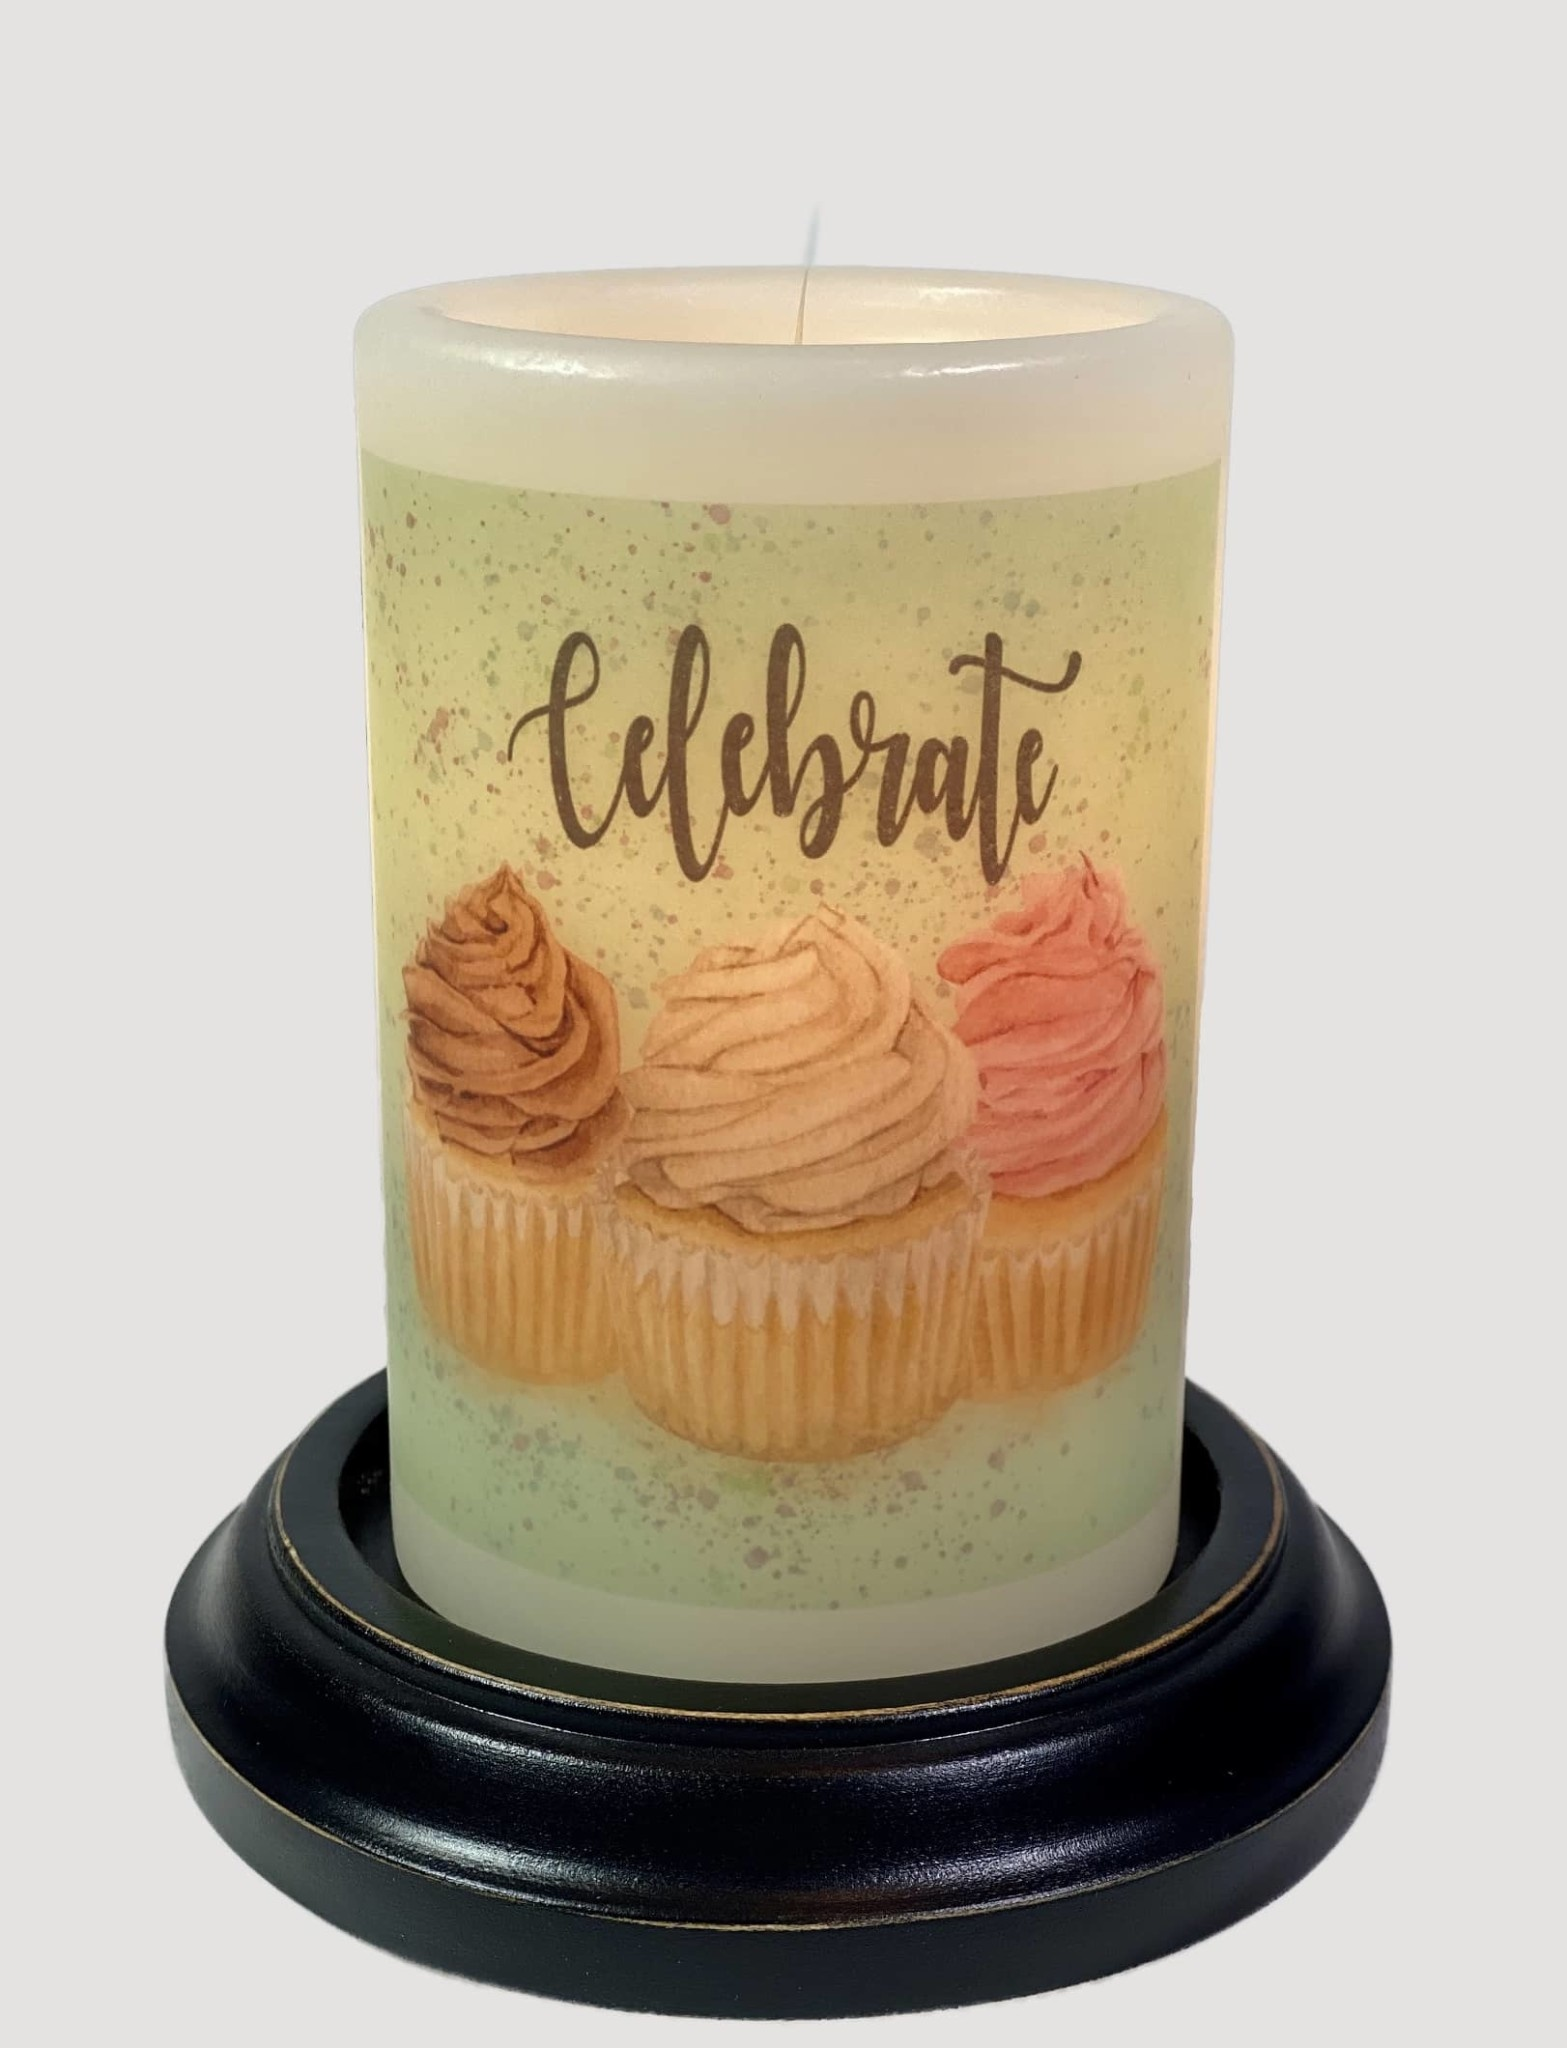 C R Designs Celebrate Cupcakes Vanilla Candle Sleeve